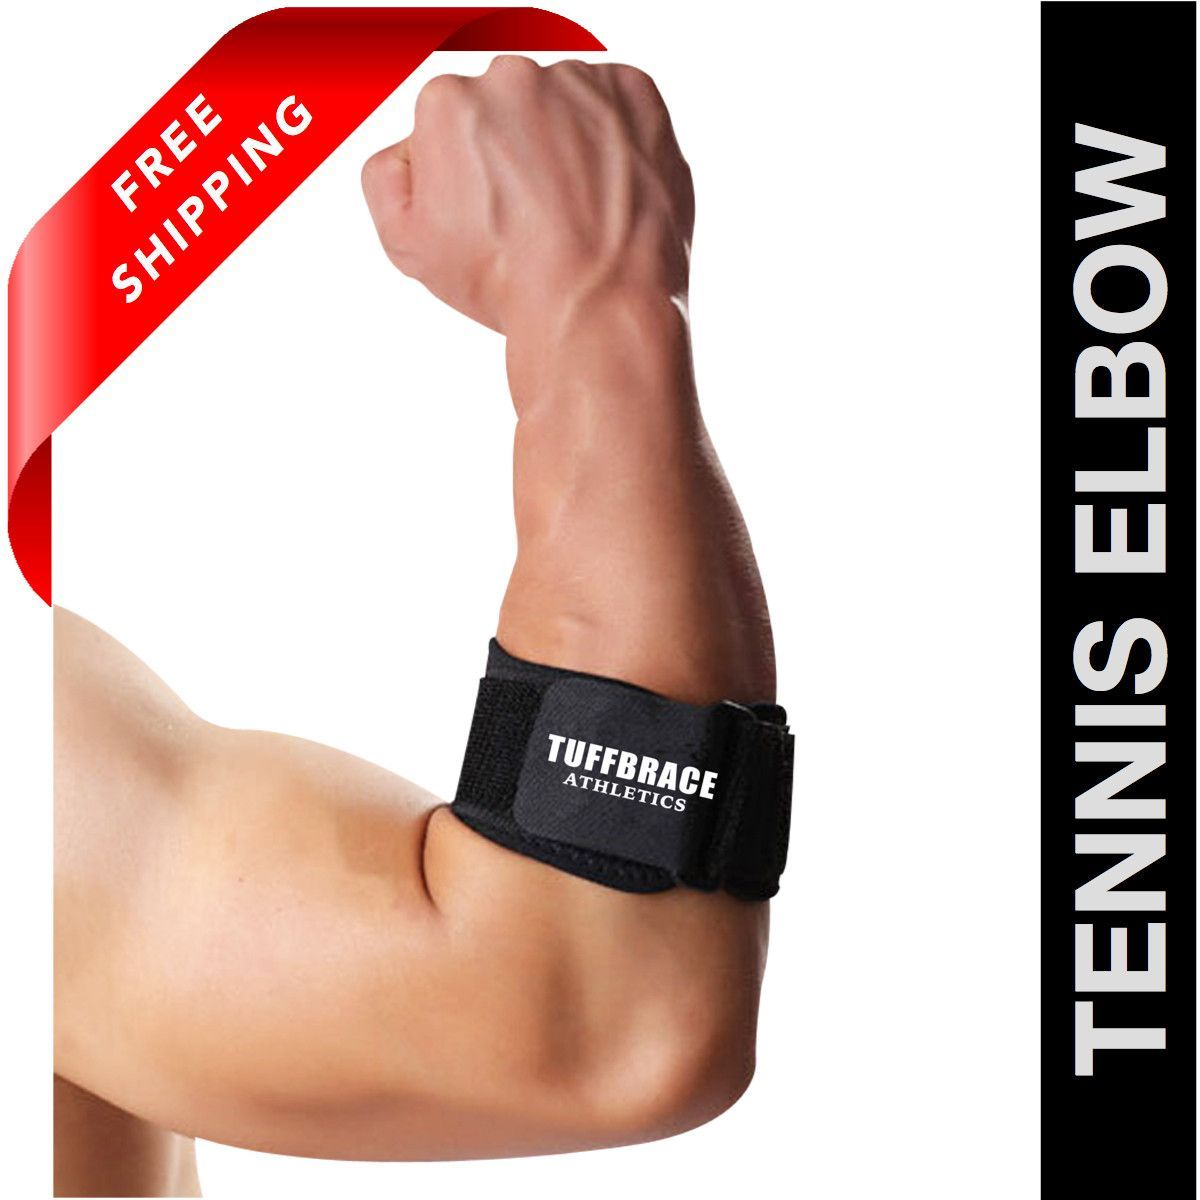 Tennis Elbow Brace by Tuffbrace Athletics. Free Shipping